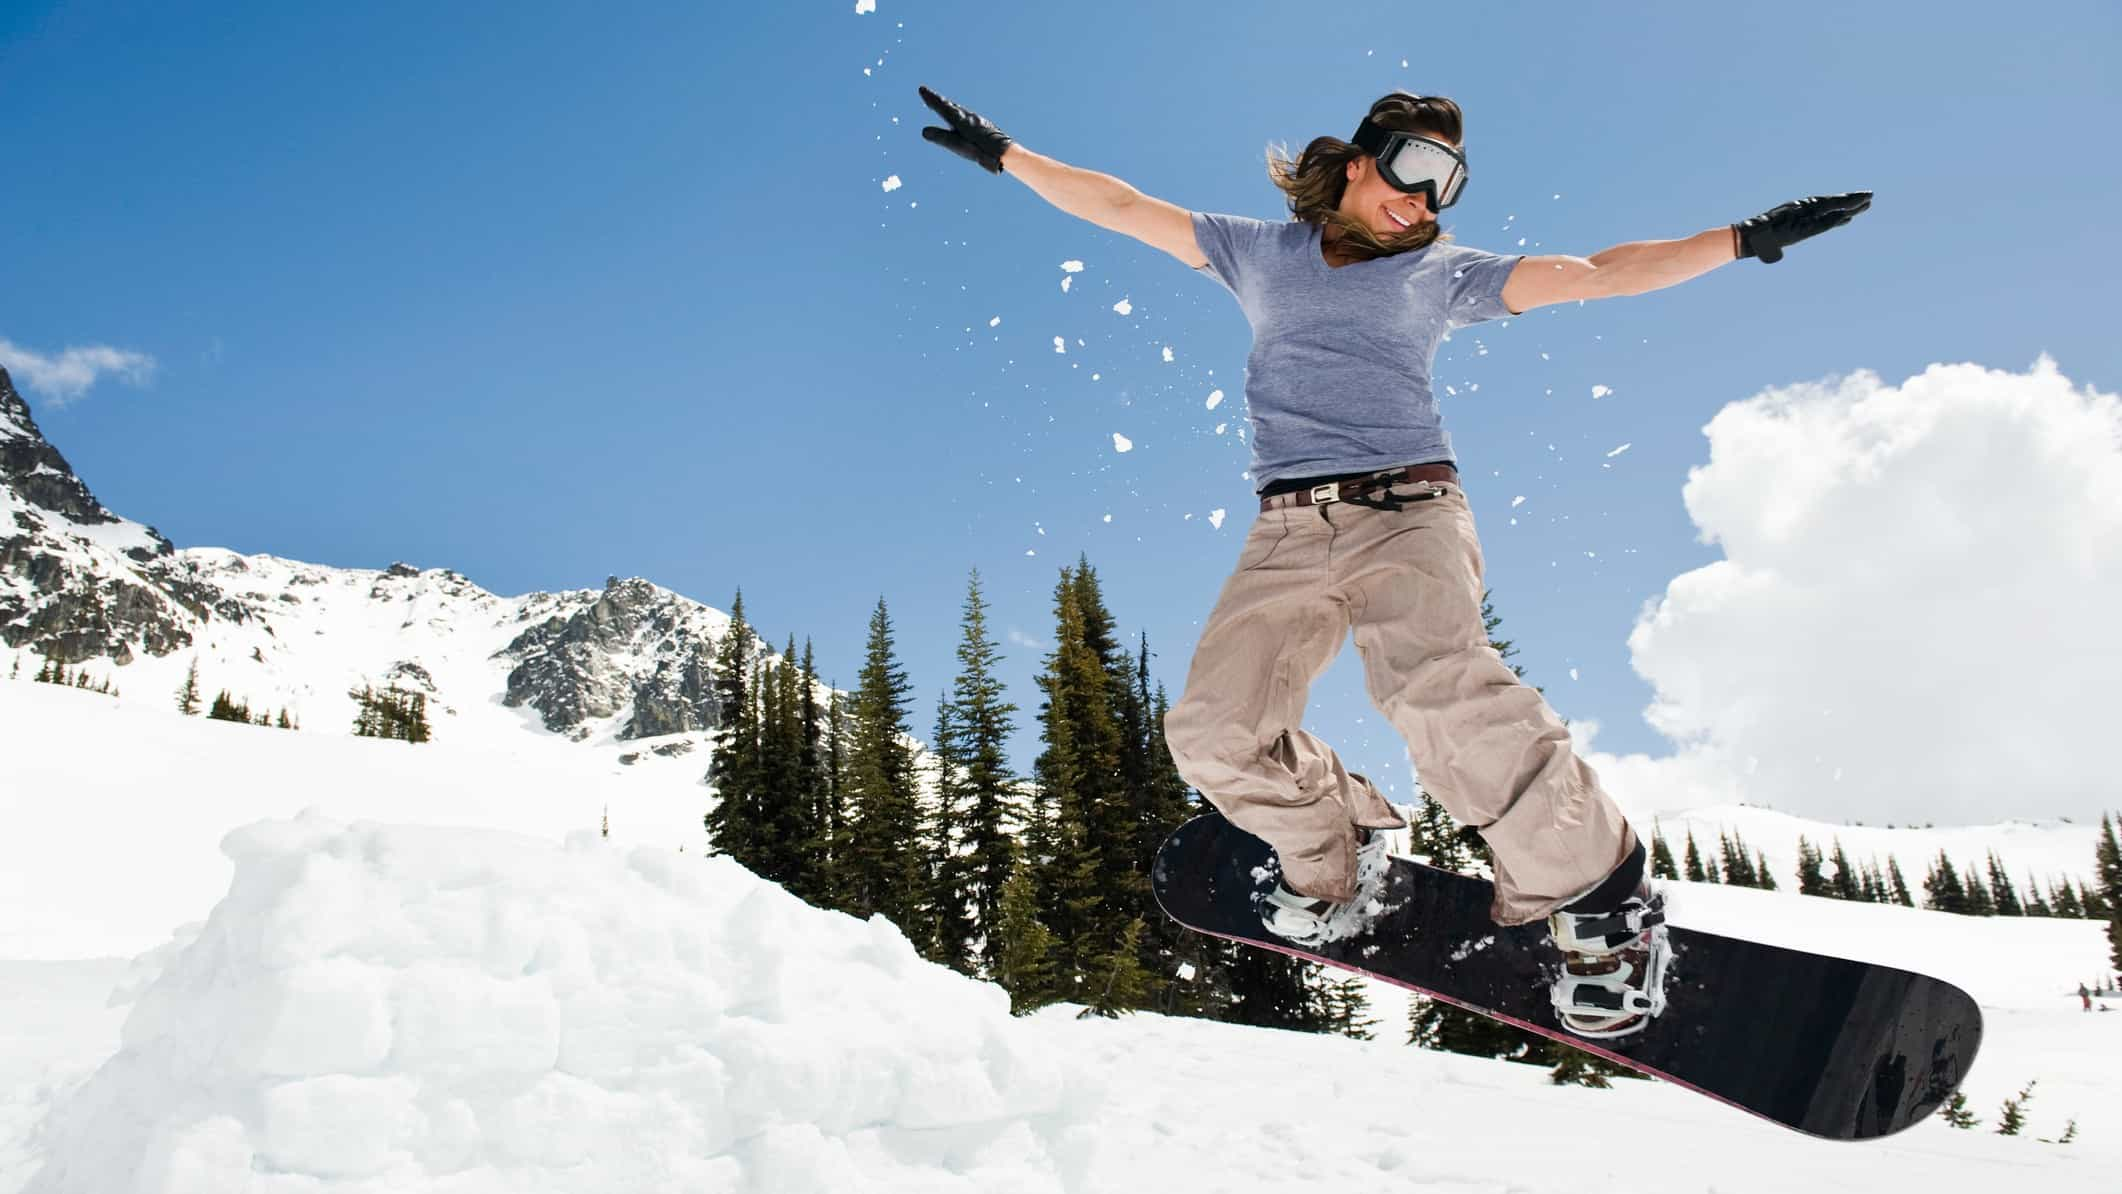 Female snowboarder flies high in the clouds.